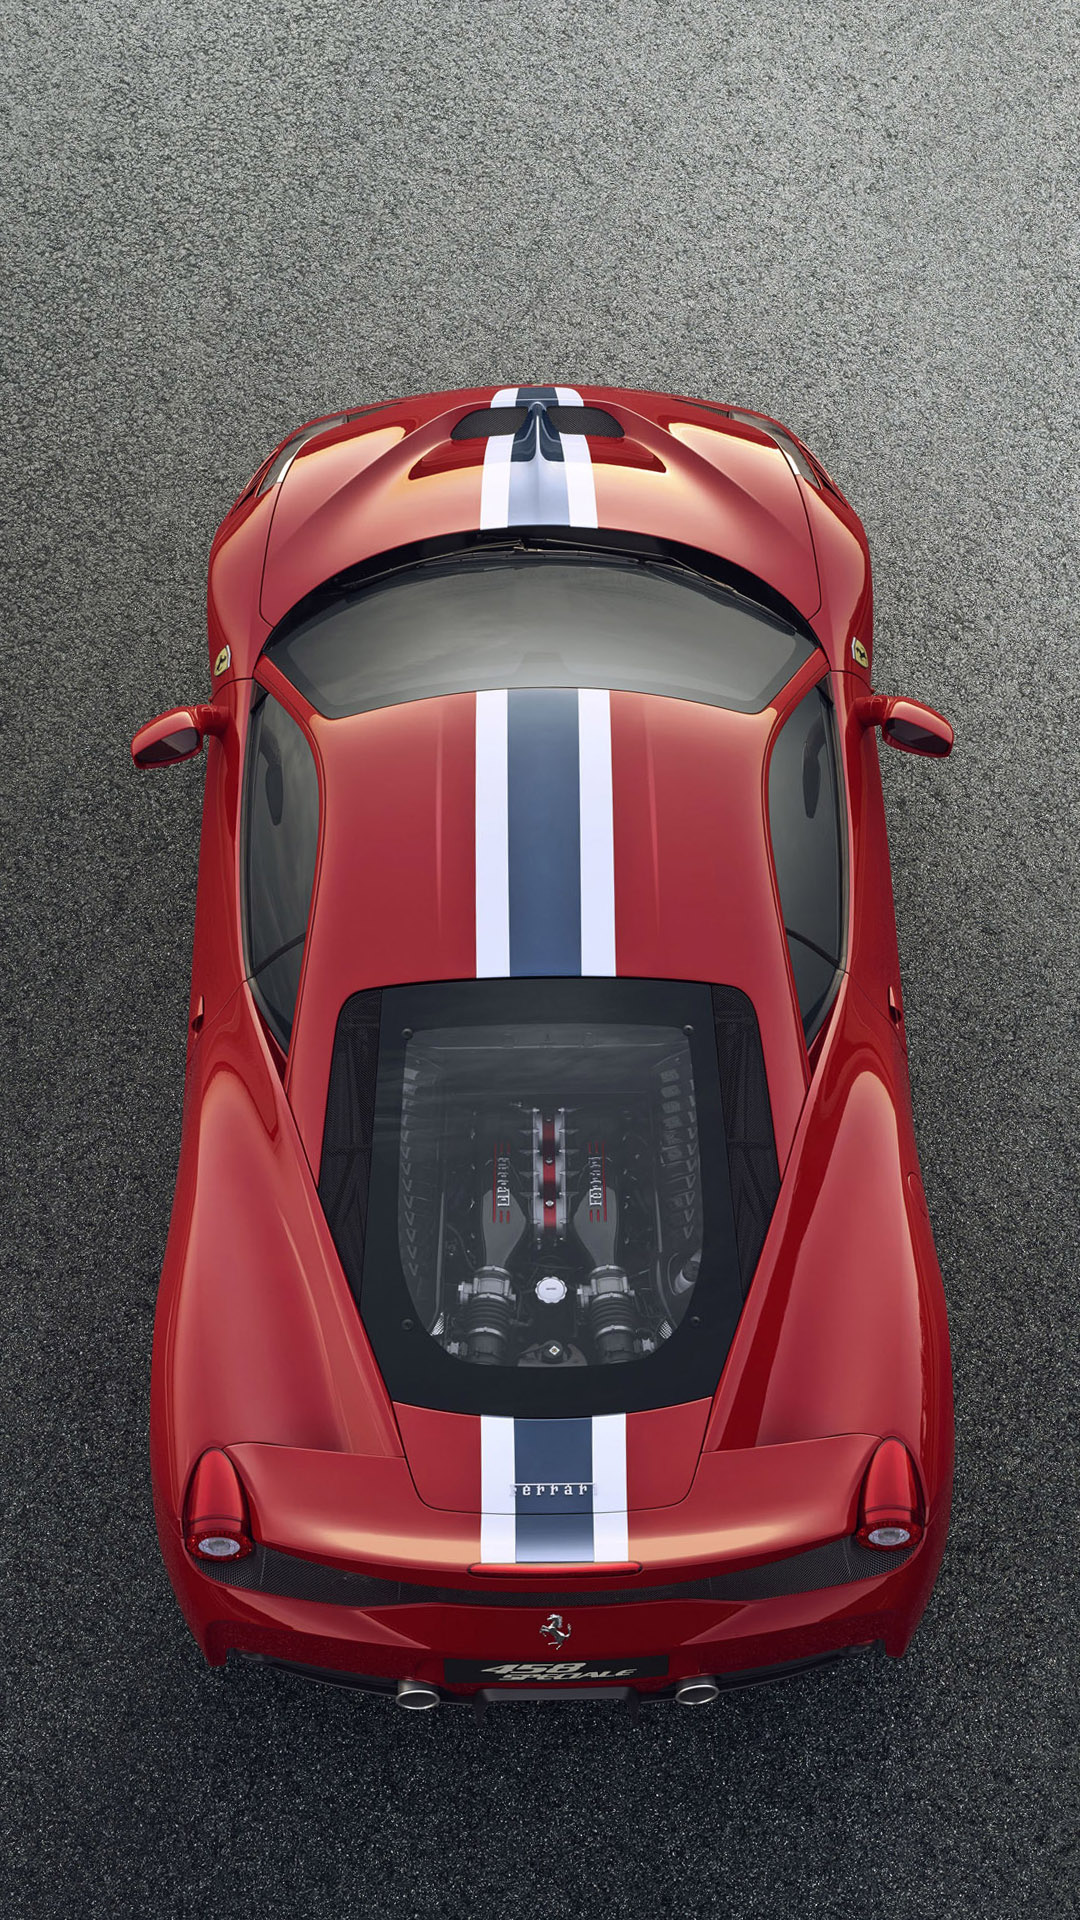 Ferrari 458 speciale htc one wallpaper